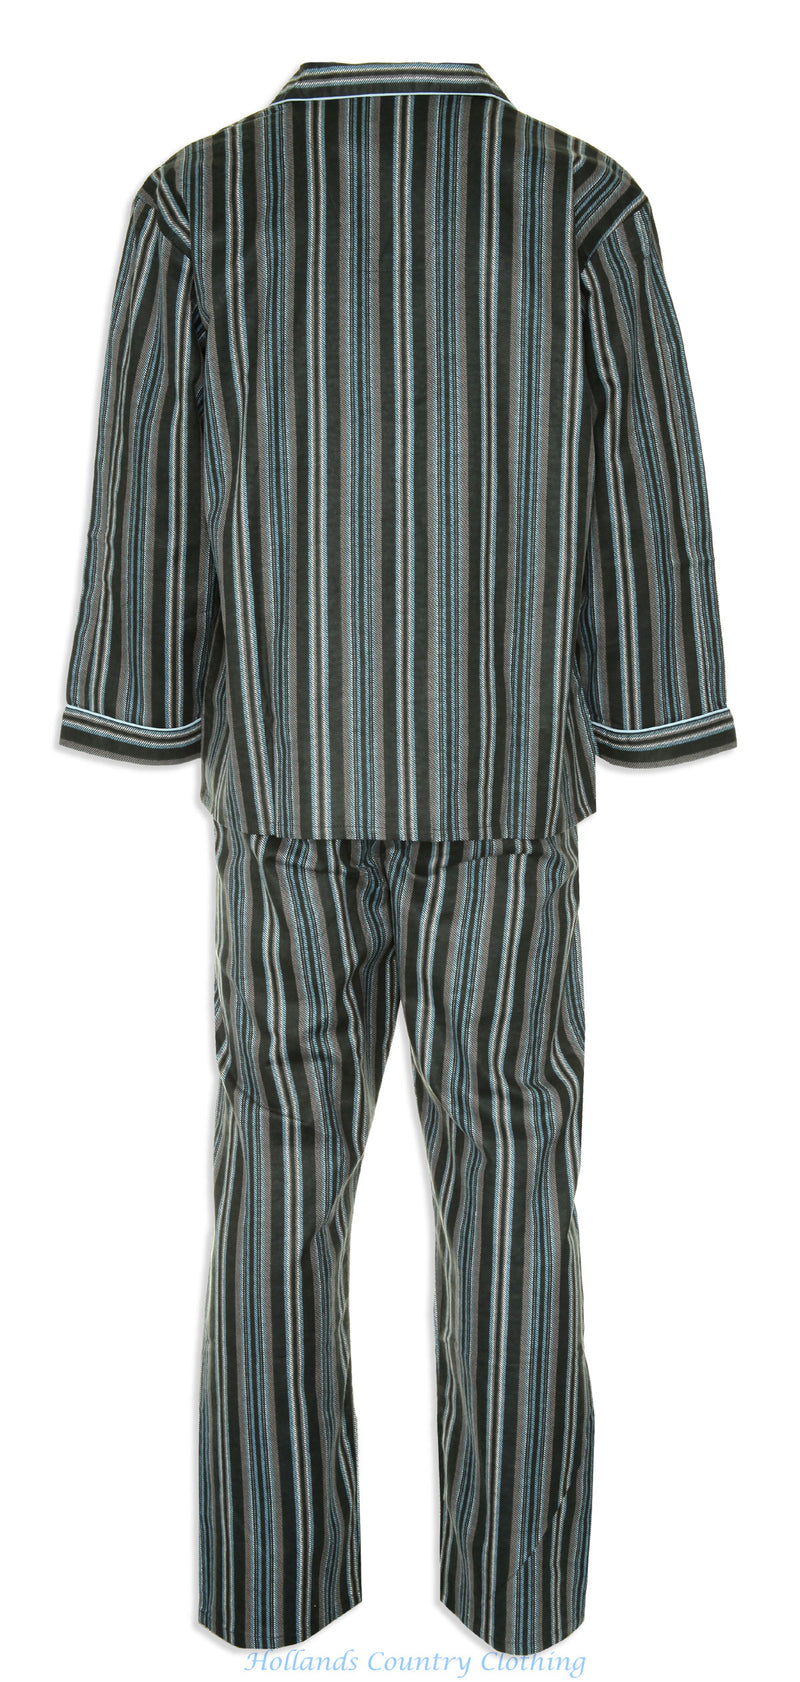 back view  Champion Kingston Striped Pyjamas 100% Cotton pair of in blue and burgundy